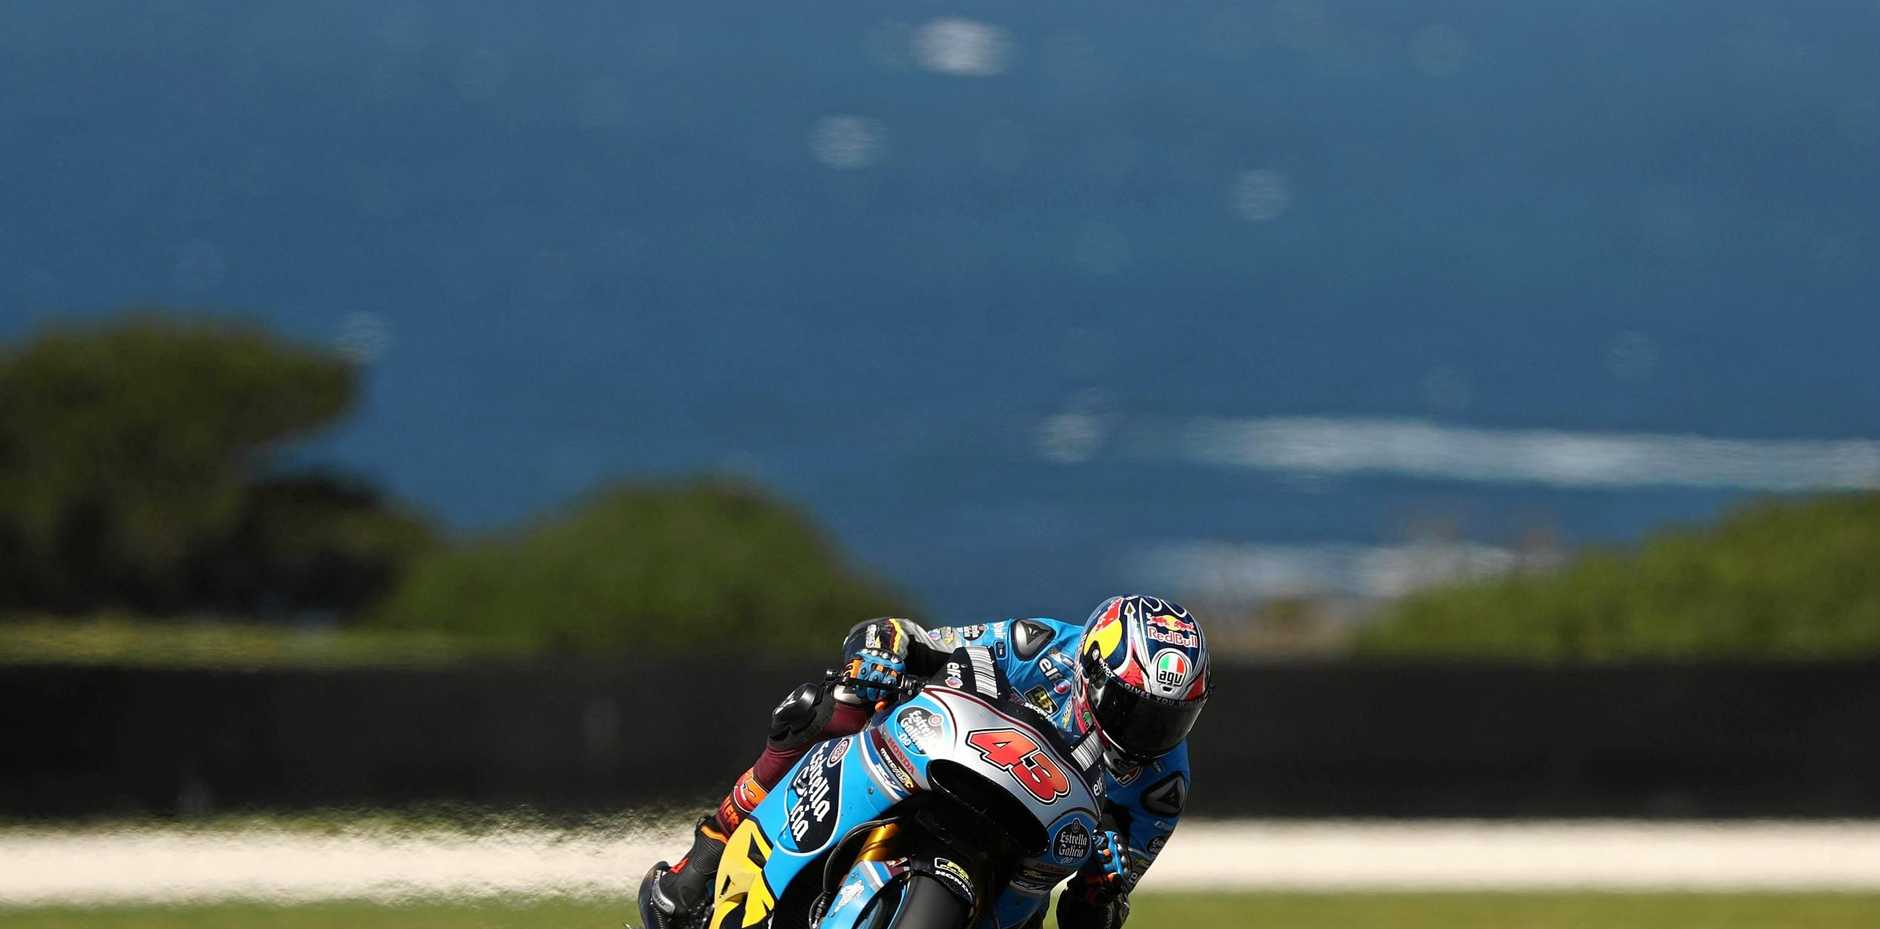 Jack Miller of Australia during practice for the 2017 Australian MotoGP at Phillip Island.